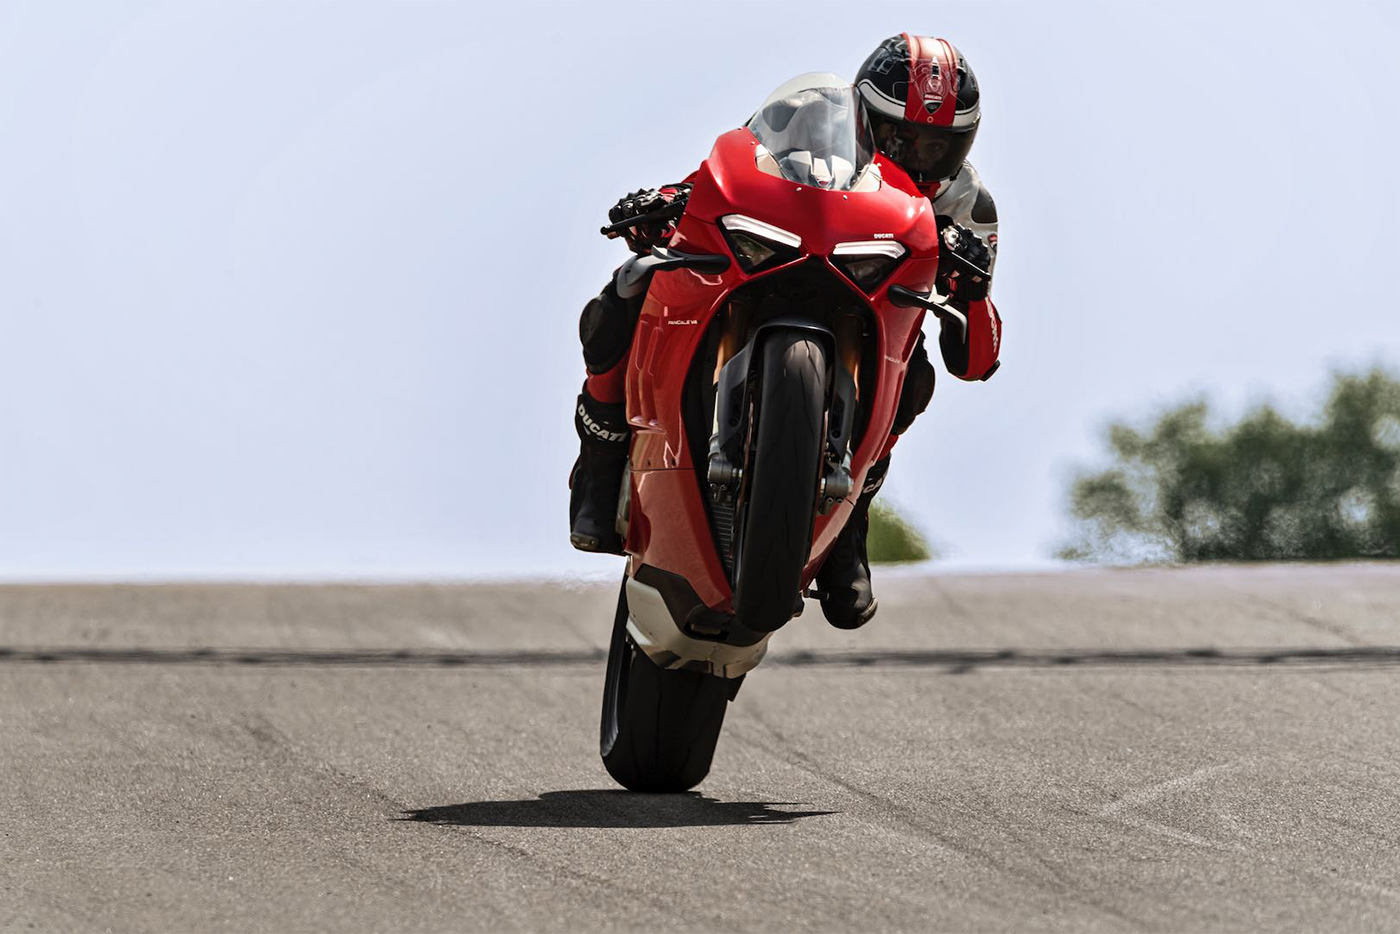 2020-ducati-panigale-v4-first-look-fast-facts-7.jpg